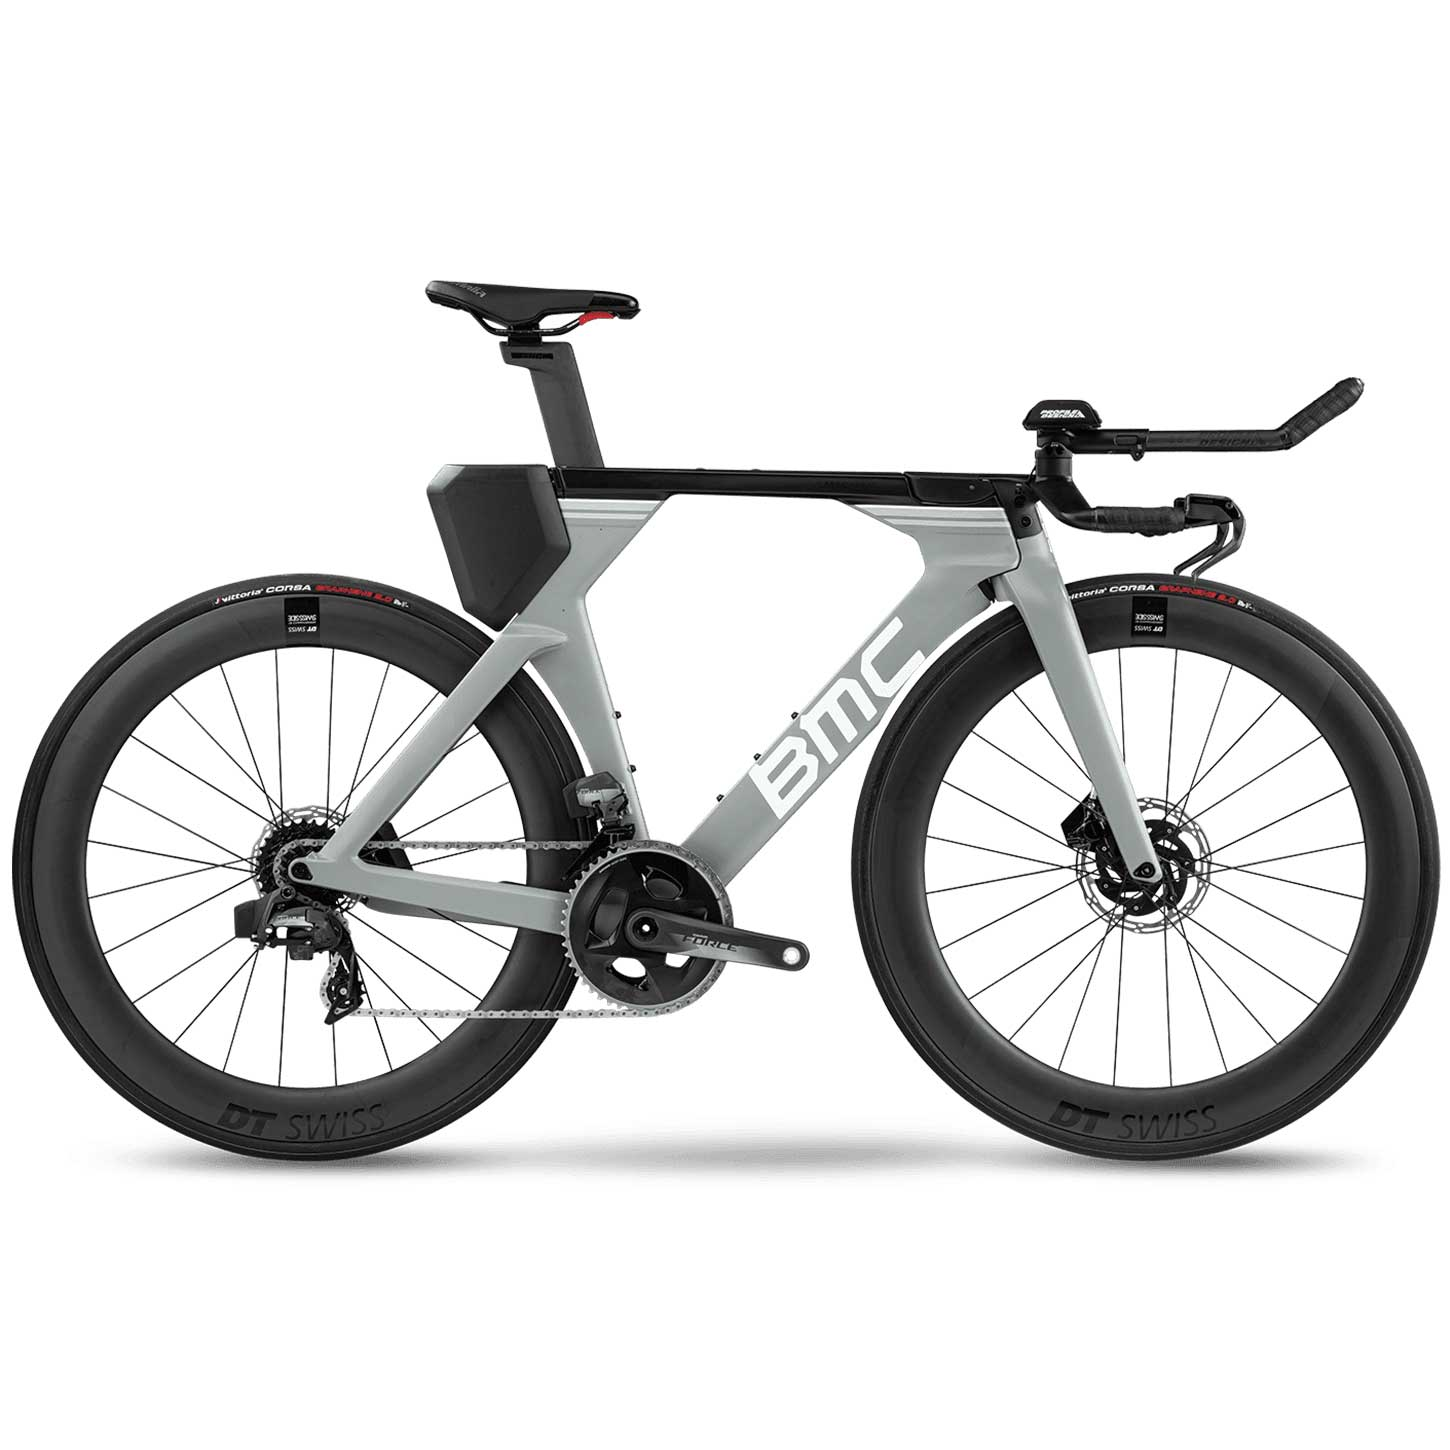 BMC Timemachine 01 DISC ONE Force eTap AXS Triathlon Bike